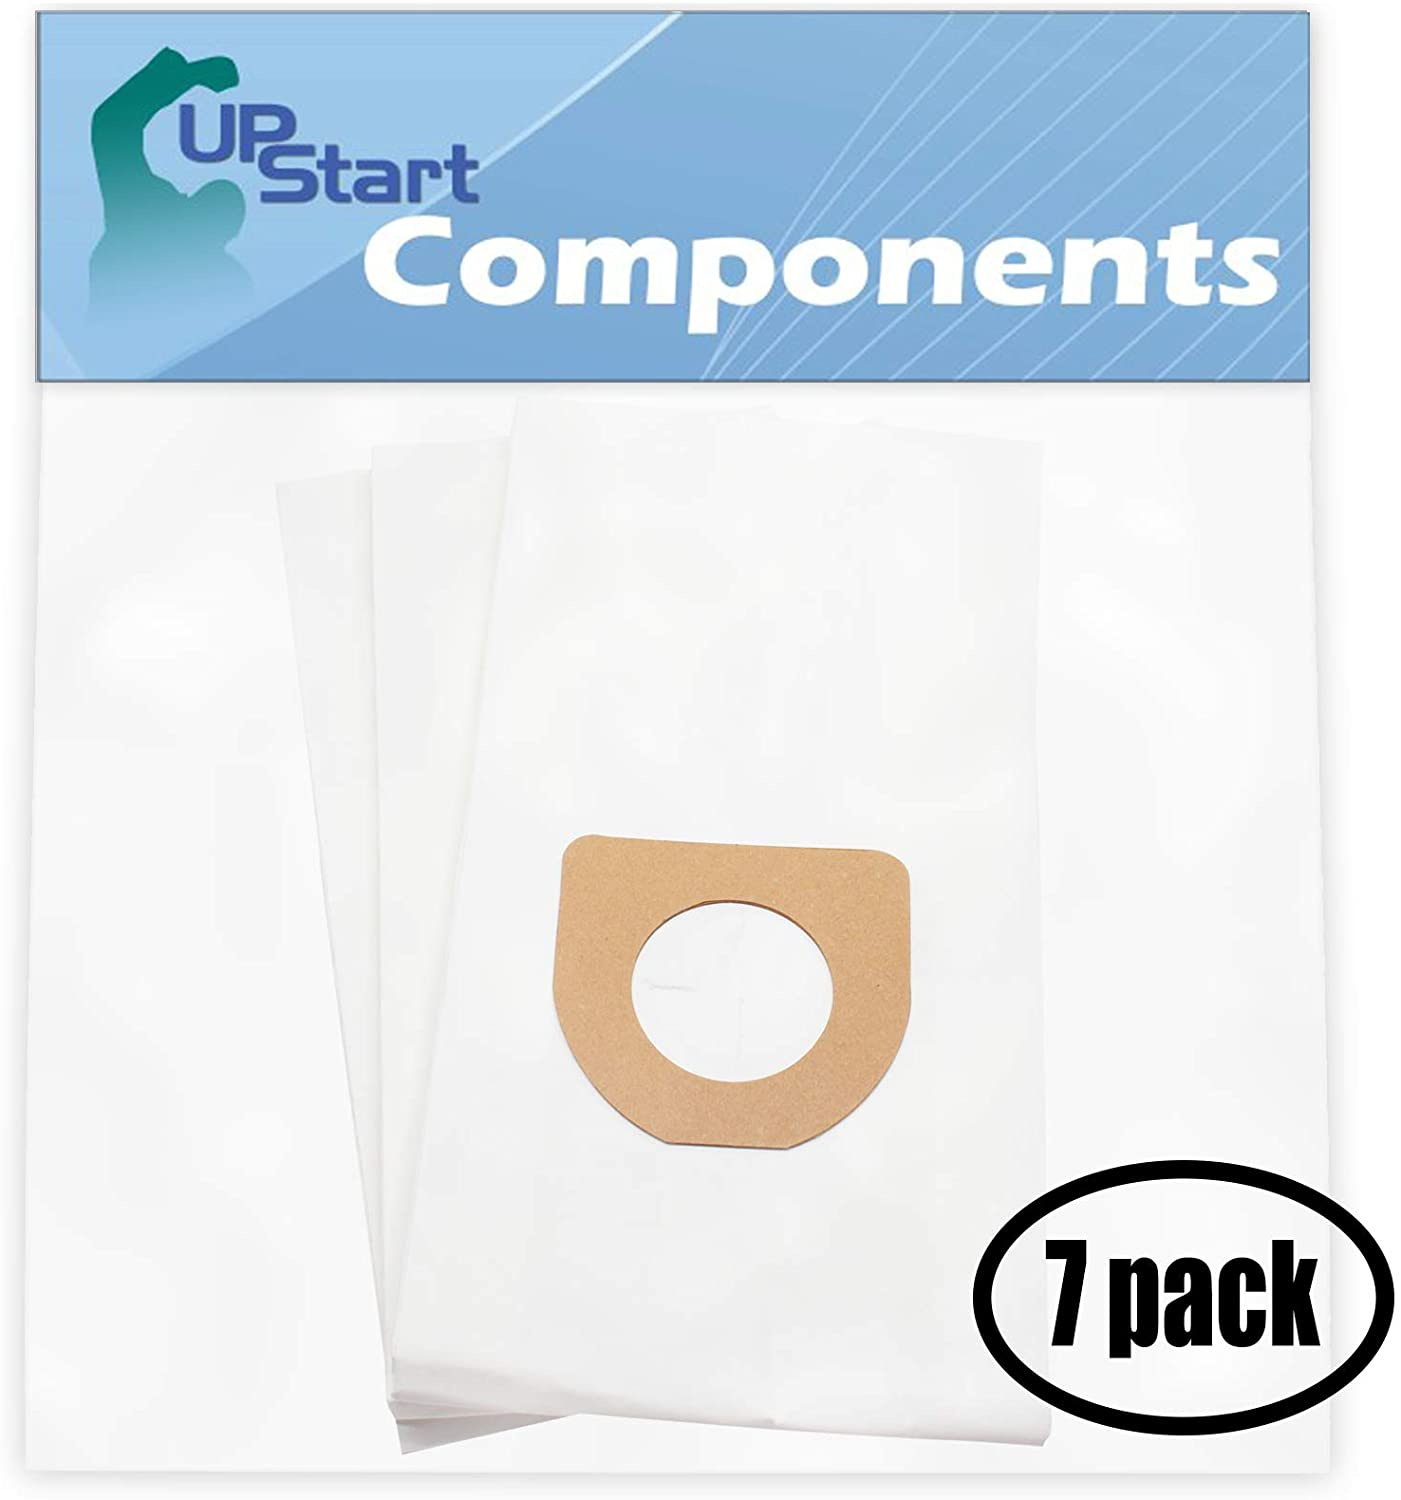 21 Replacement Type A Bags 4010001A for Hoover, Bissell, Kenmore, Singer - Compatible with Hoover Tempo, Hoover Elite, Hoover Constellation, Hoover Sprint, Hoover Runabout, Hoover Concept One, Hoover Soft and Light, Hoover Decade 80, Hoover PowerMAX, Hoover Futura, Hoover Legacy, Hoover Type A, Hoover Concept Two, Hoover Encore, Hoover Preferred, Hoover Decade 800